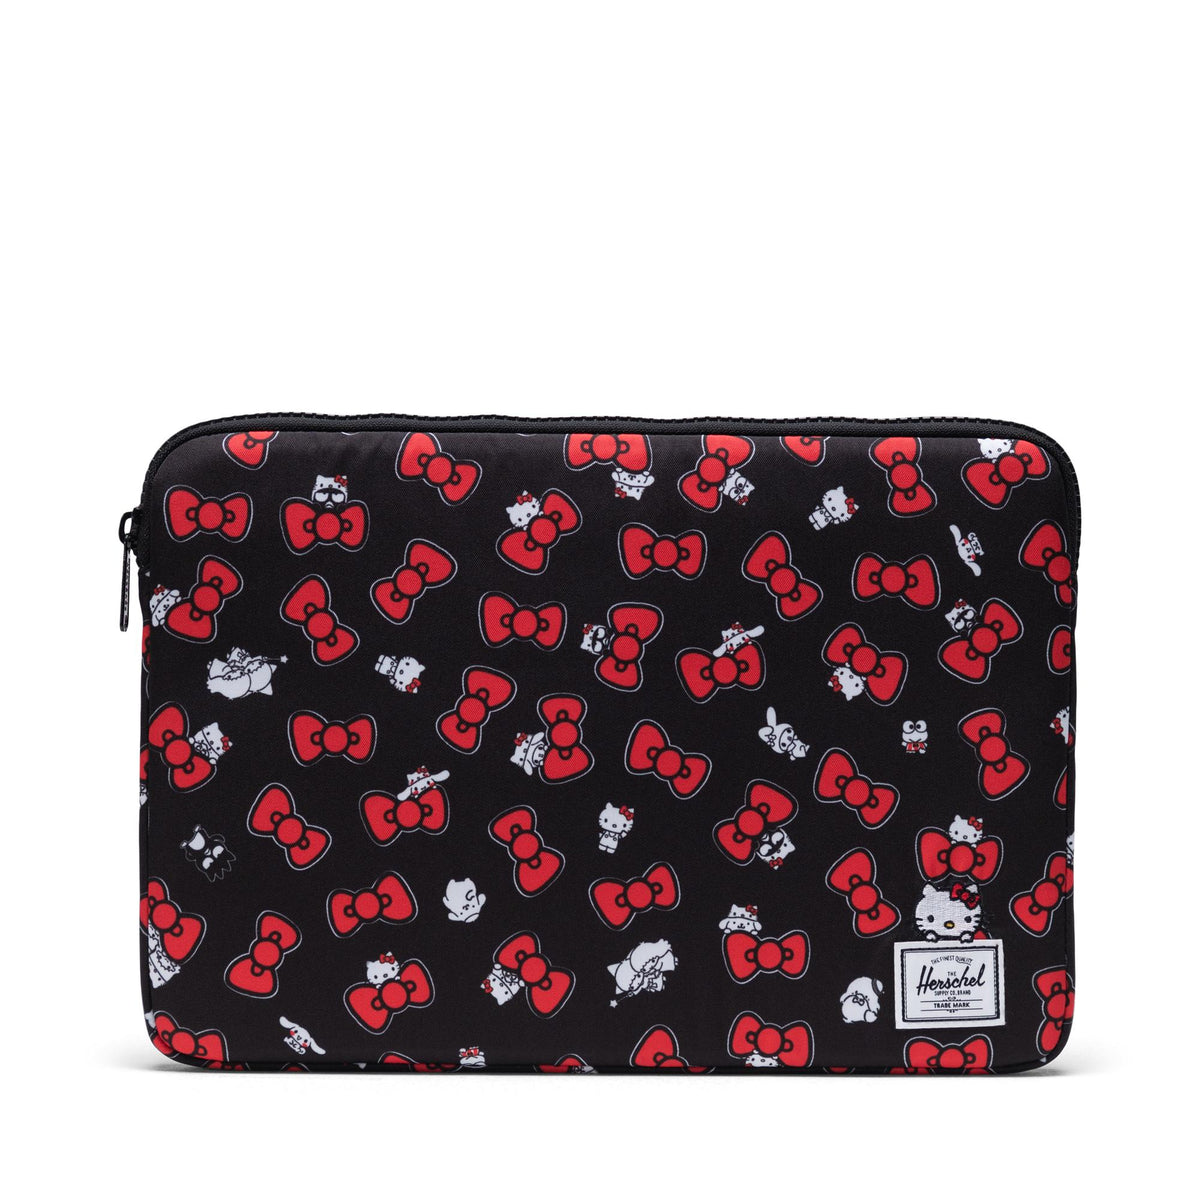 "Herschel x Hello Kitty & Friends Bows Anchor 13"" Laptop Sleeve"